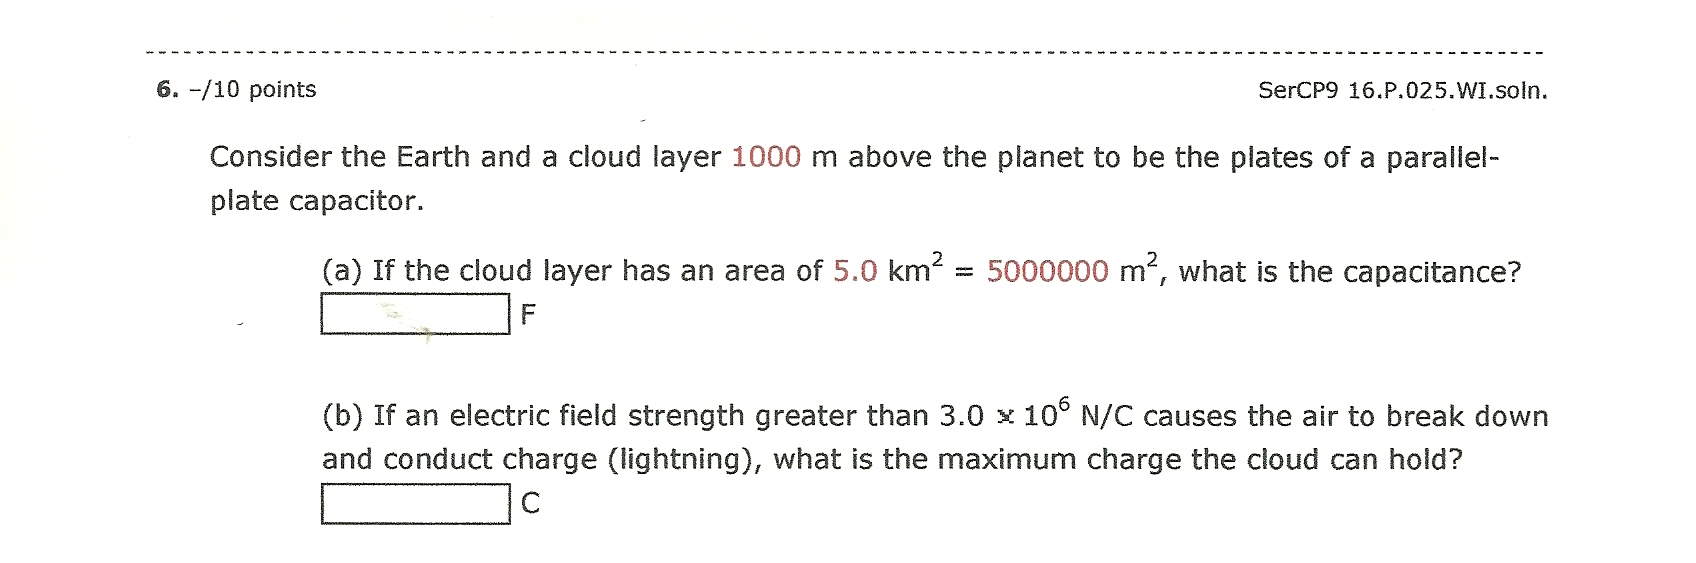 Consider the Earth and a cloud layer 1000 m above